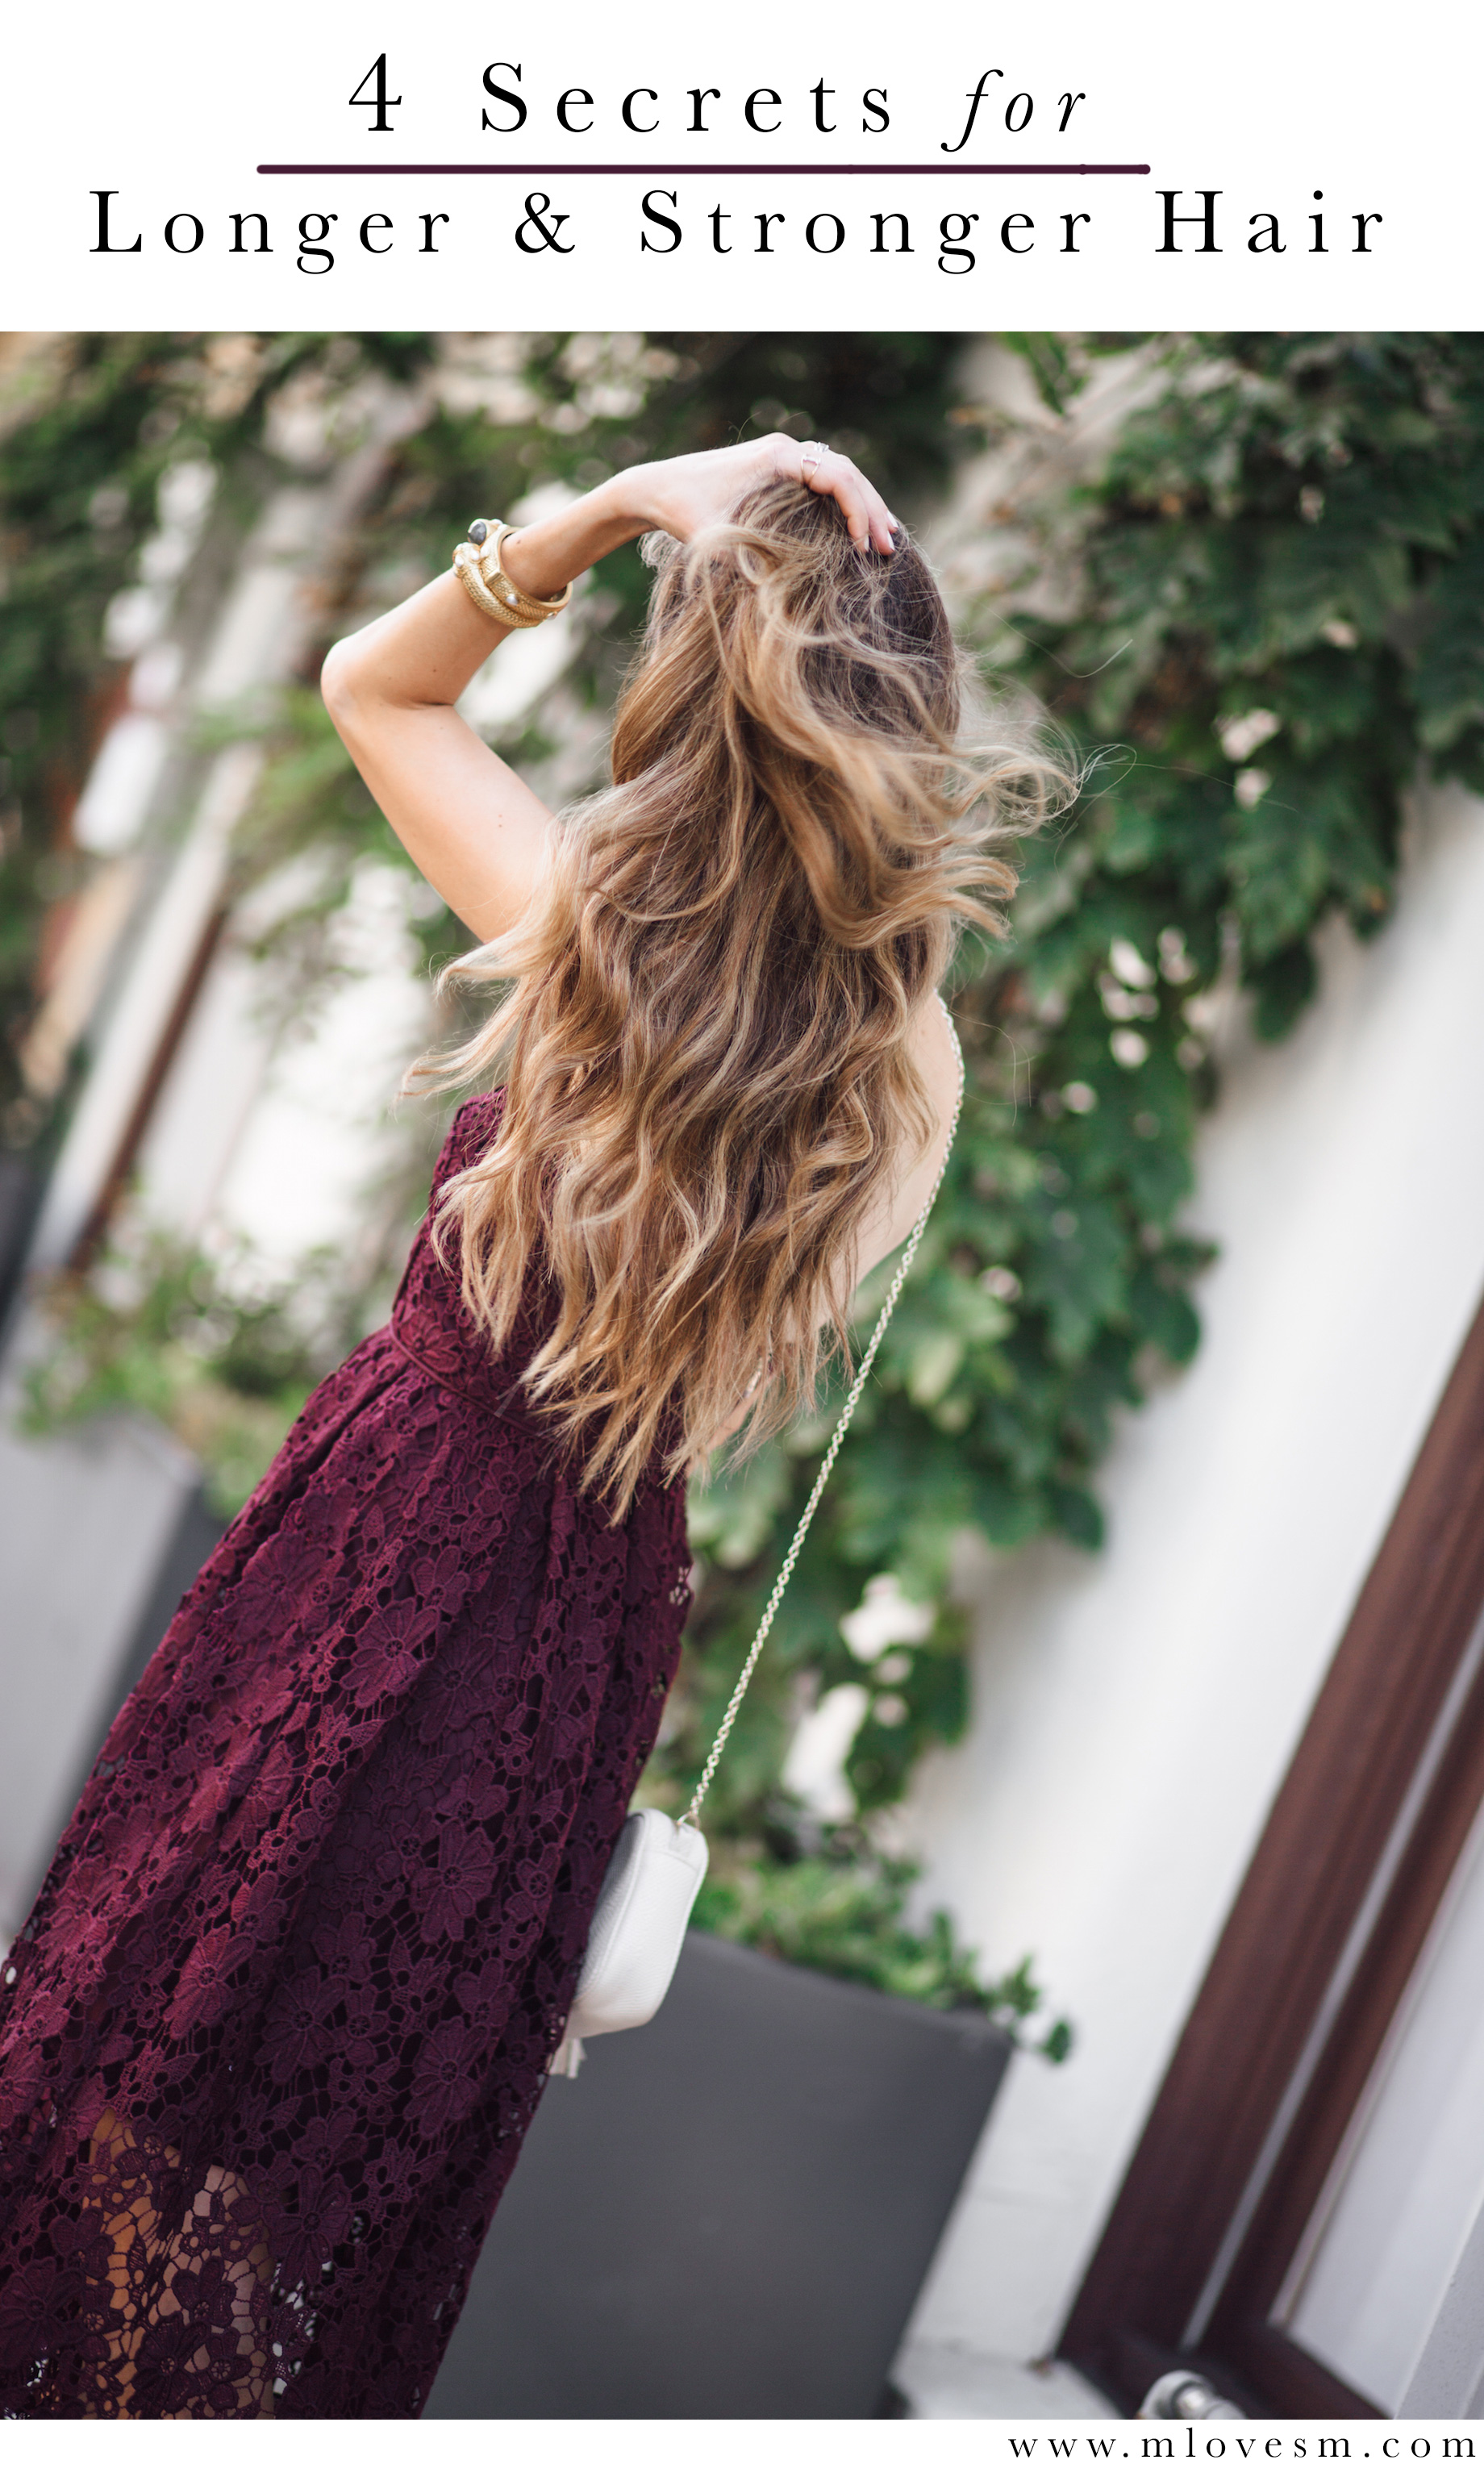 sharing my 4 secrets to get longer and stronger hair - M Loves M @marmar